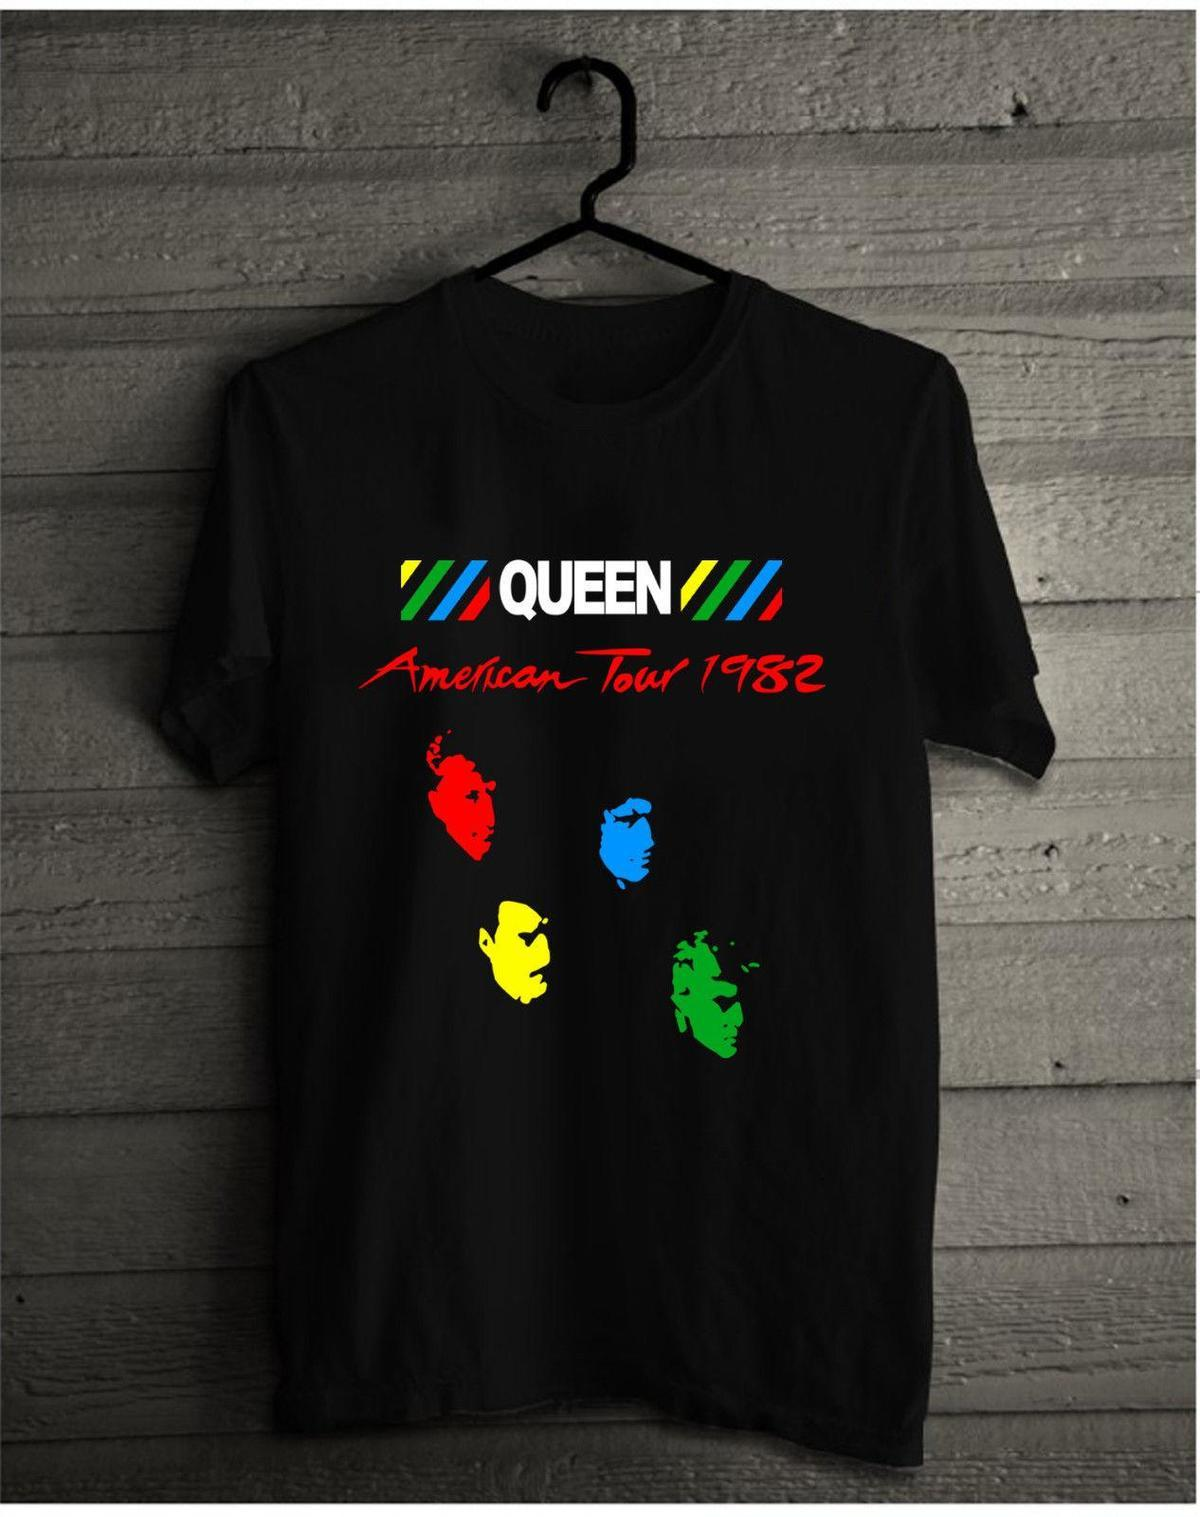 Queen Vintage T Shirt 1982 Hot Space Tour Freddie Mercury Under Pressure  Reprint High Quality Custom Printed Tops Hipster Tees T Shirt T Shirts